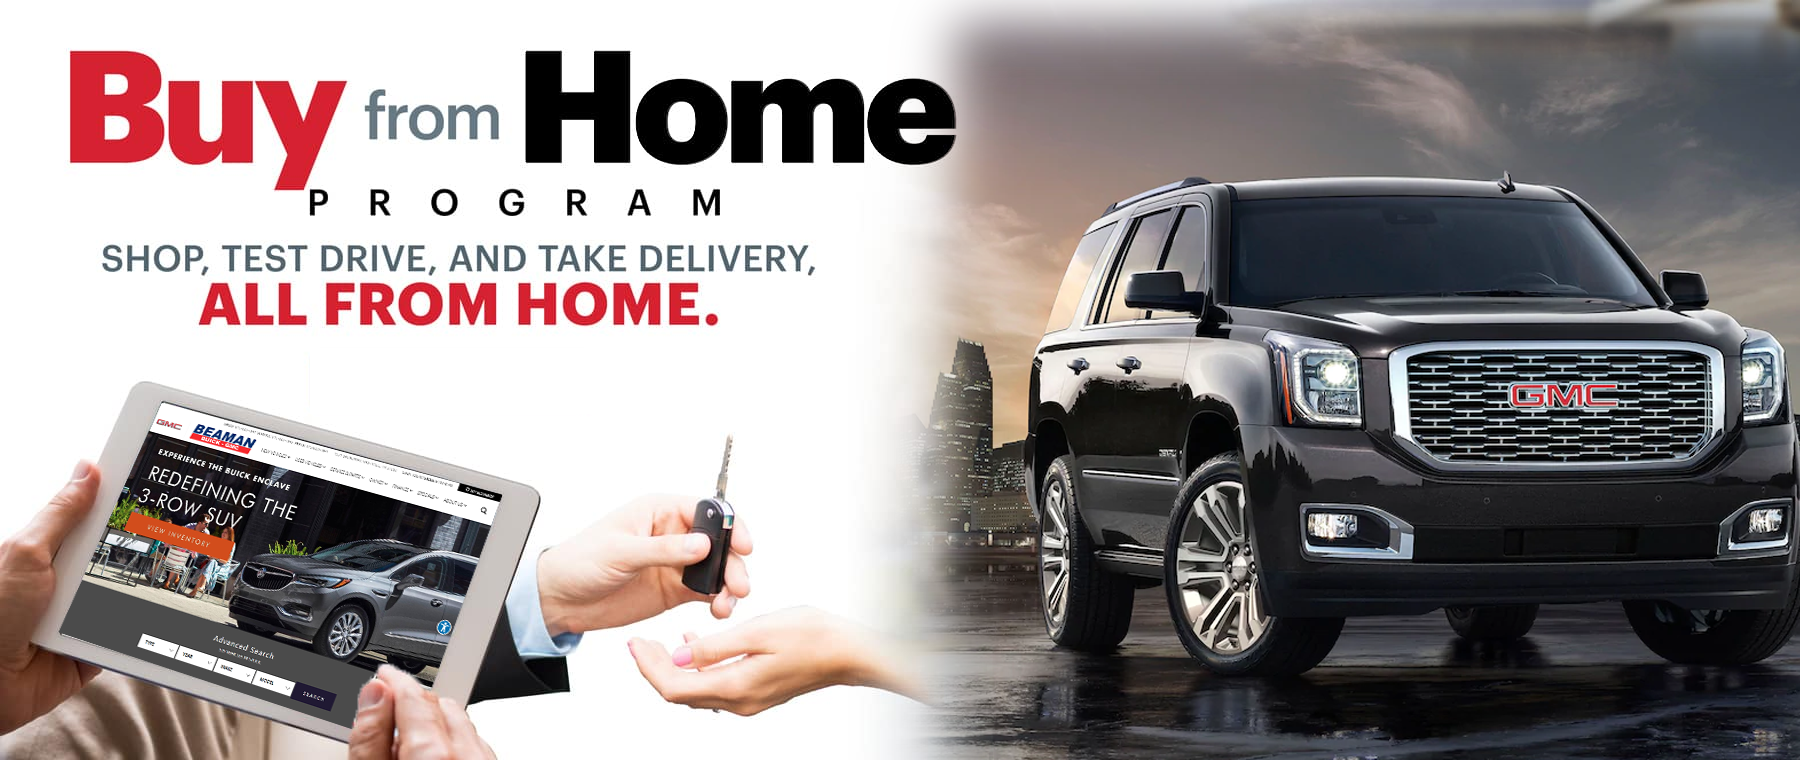 BuyfromHome1800x760